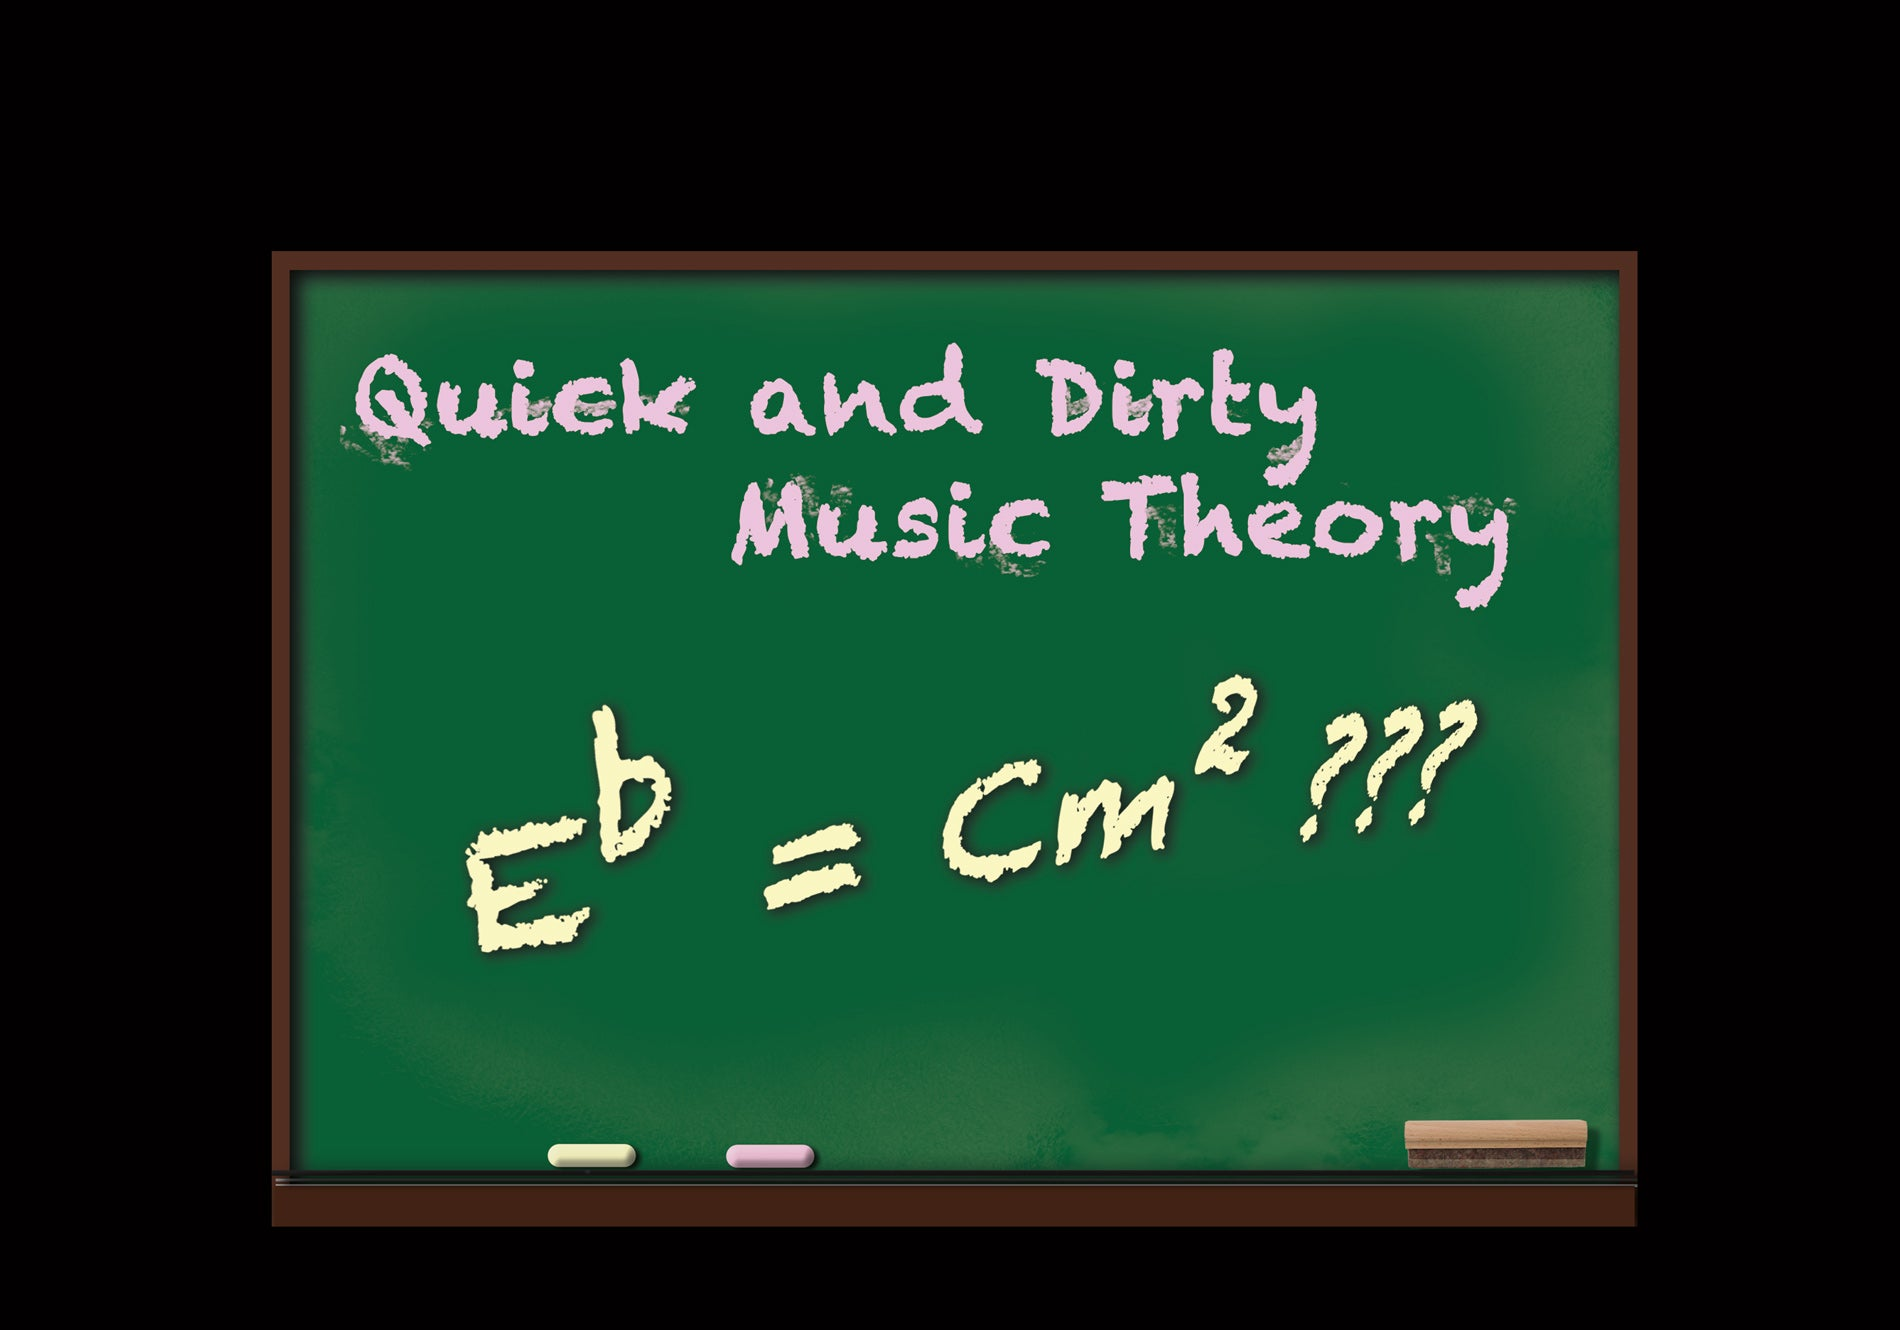 Quick and Dirty Music Theory